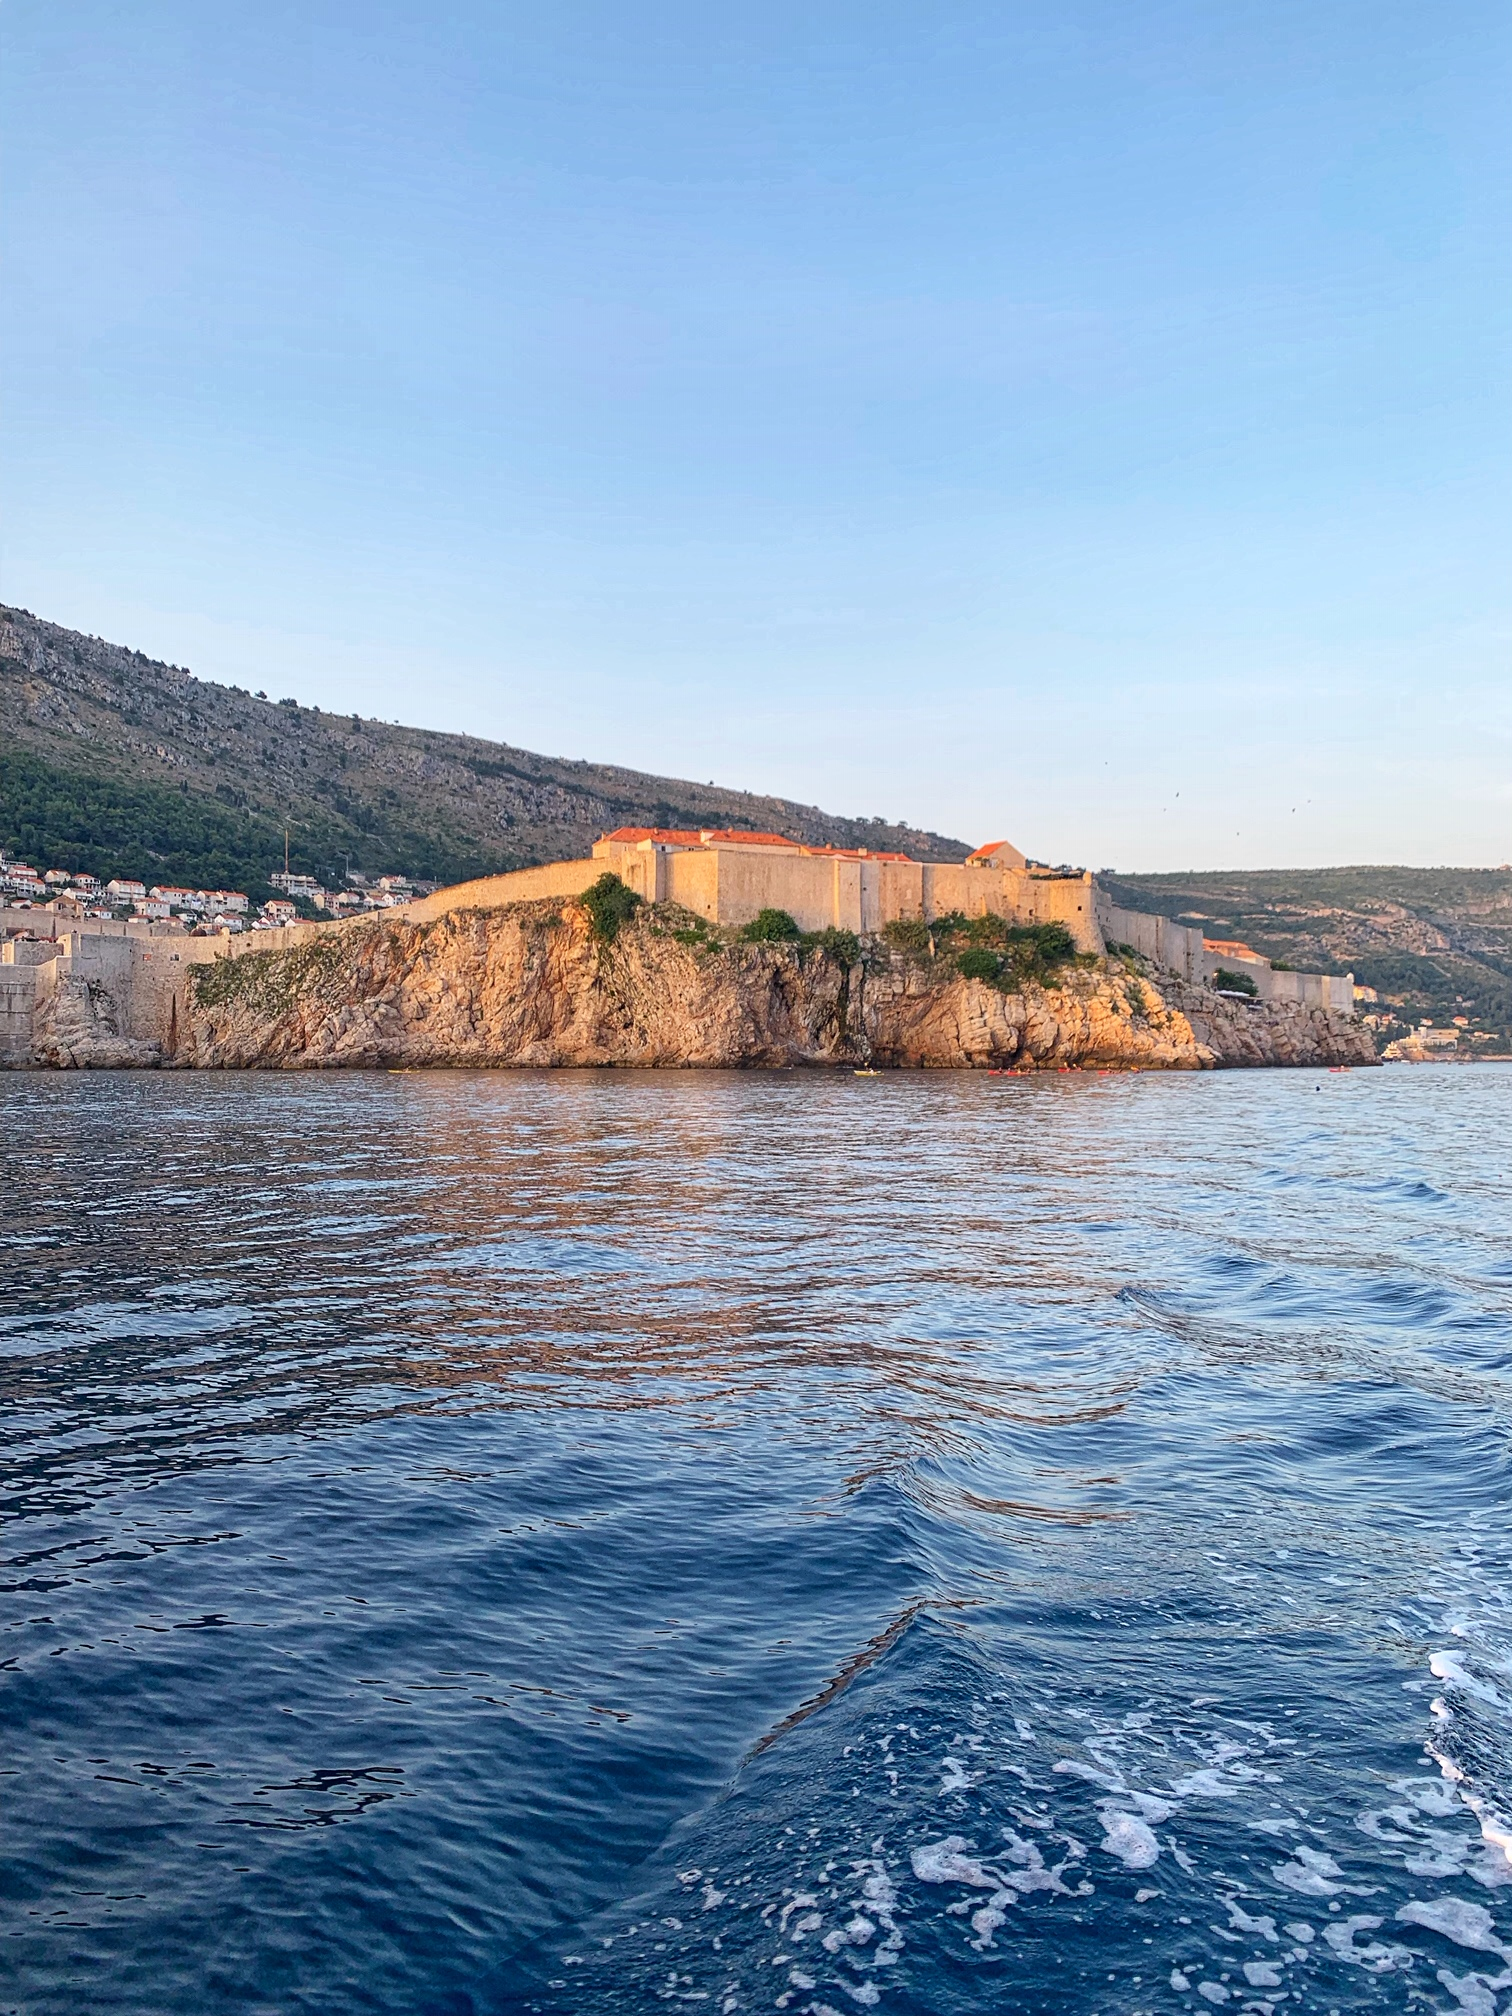 dubrovnik, the-alyst.com